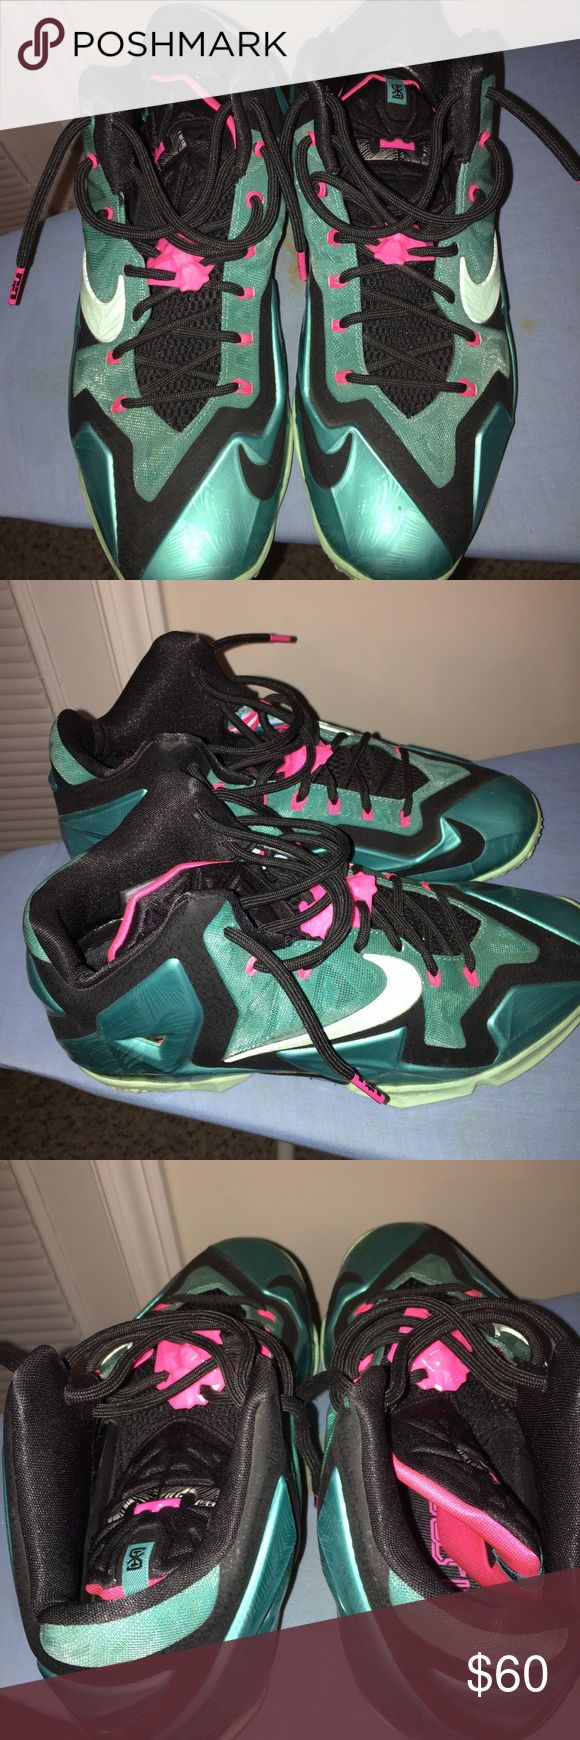 Turquoise and Pink LeBrons Mens 9.5 Nike Shoes Athletic Shoes